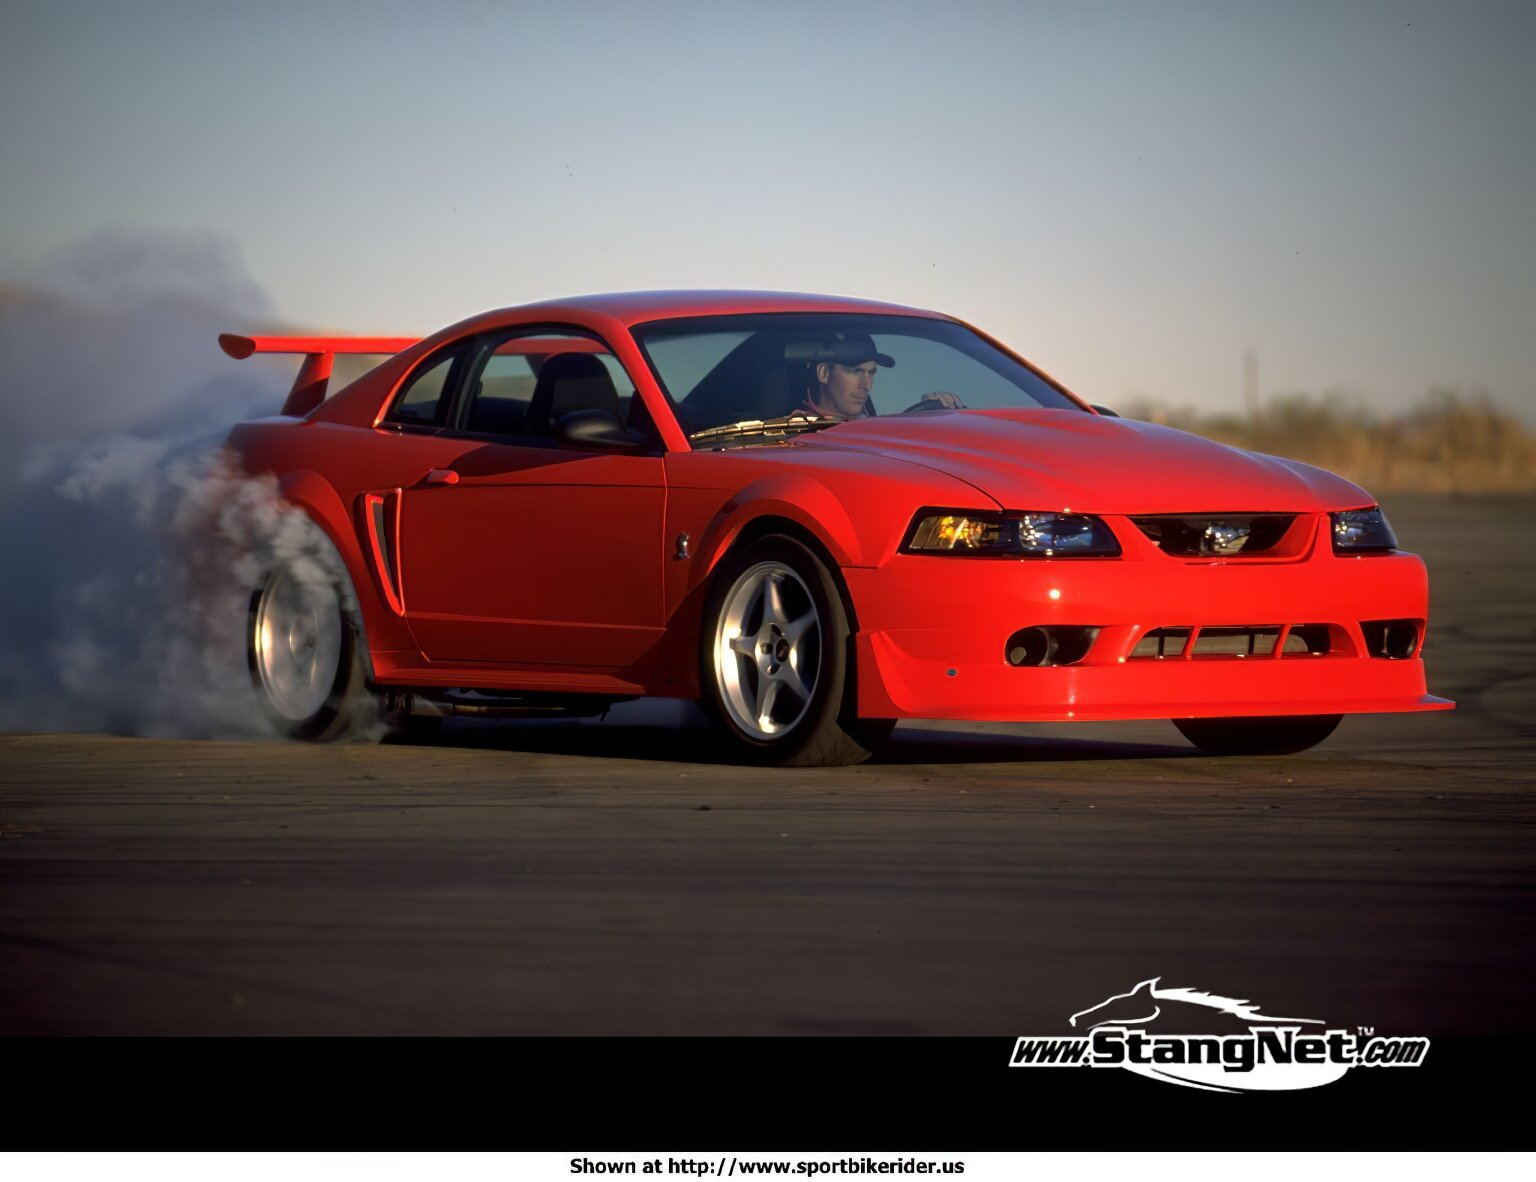 Ford Mustang - ID: 1621